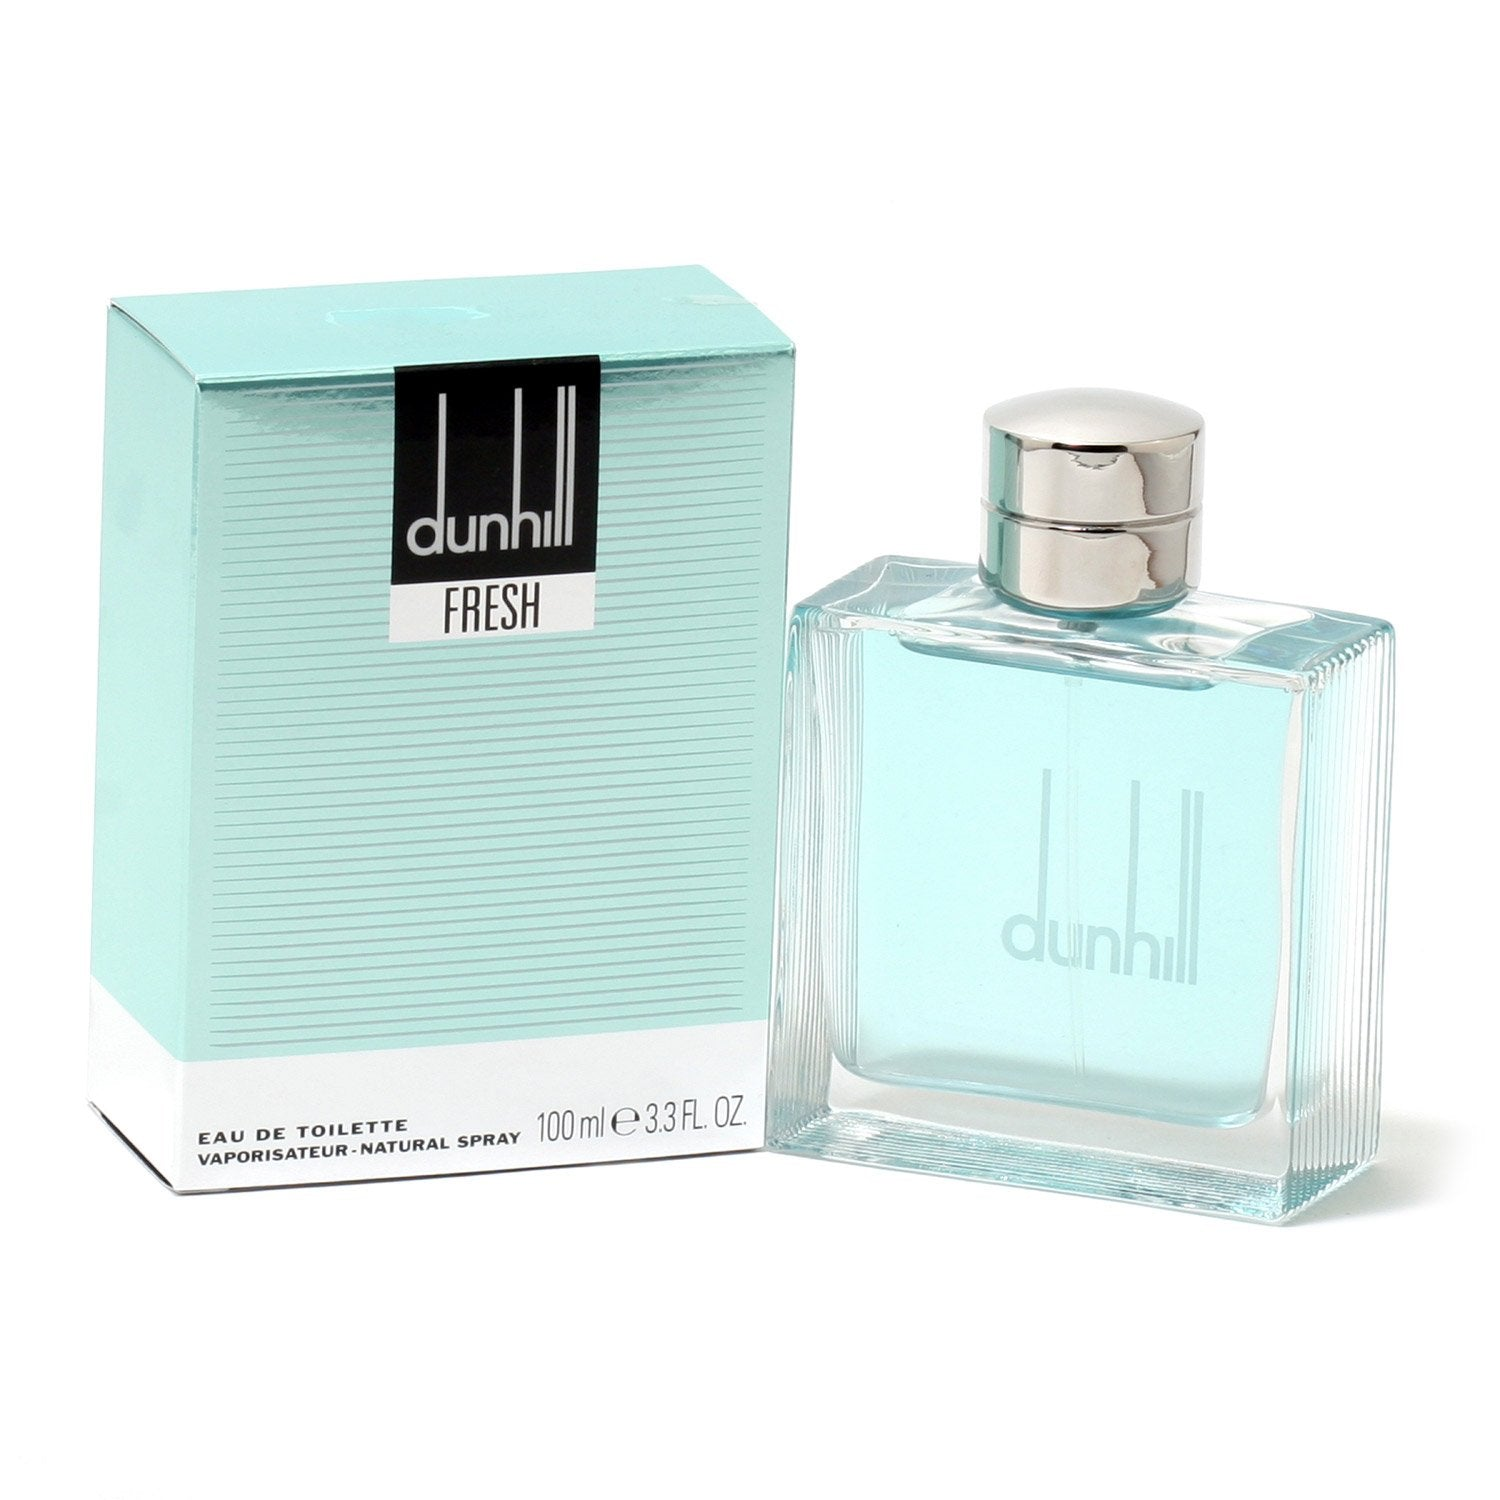 Cologne - DUNHILL FRESH FOR MEN - EAU DE TOILETTE SPRAY, 3.4 OZ